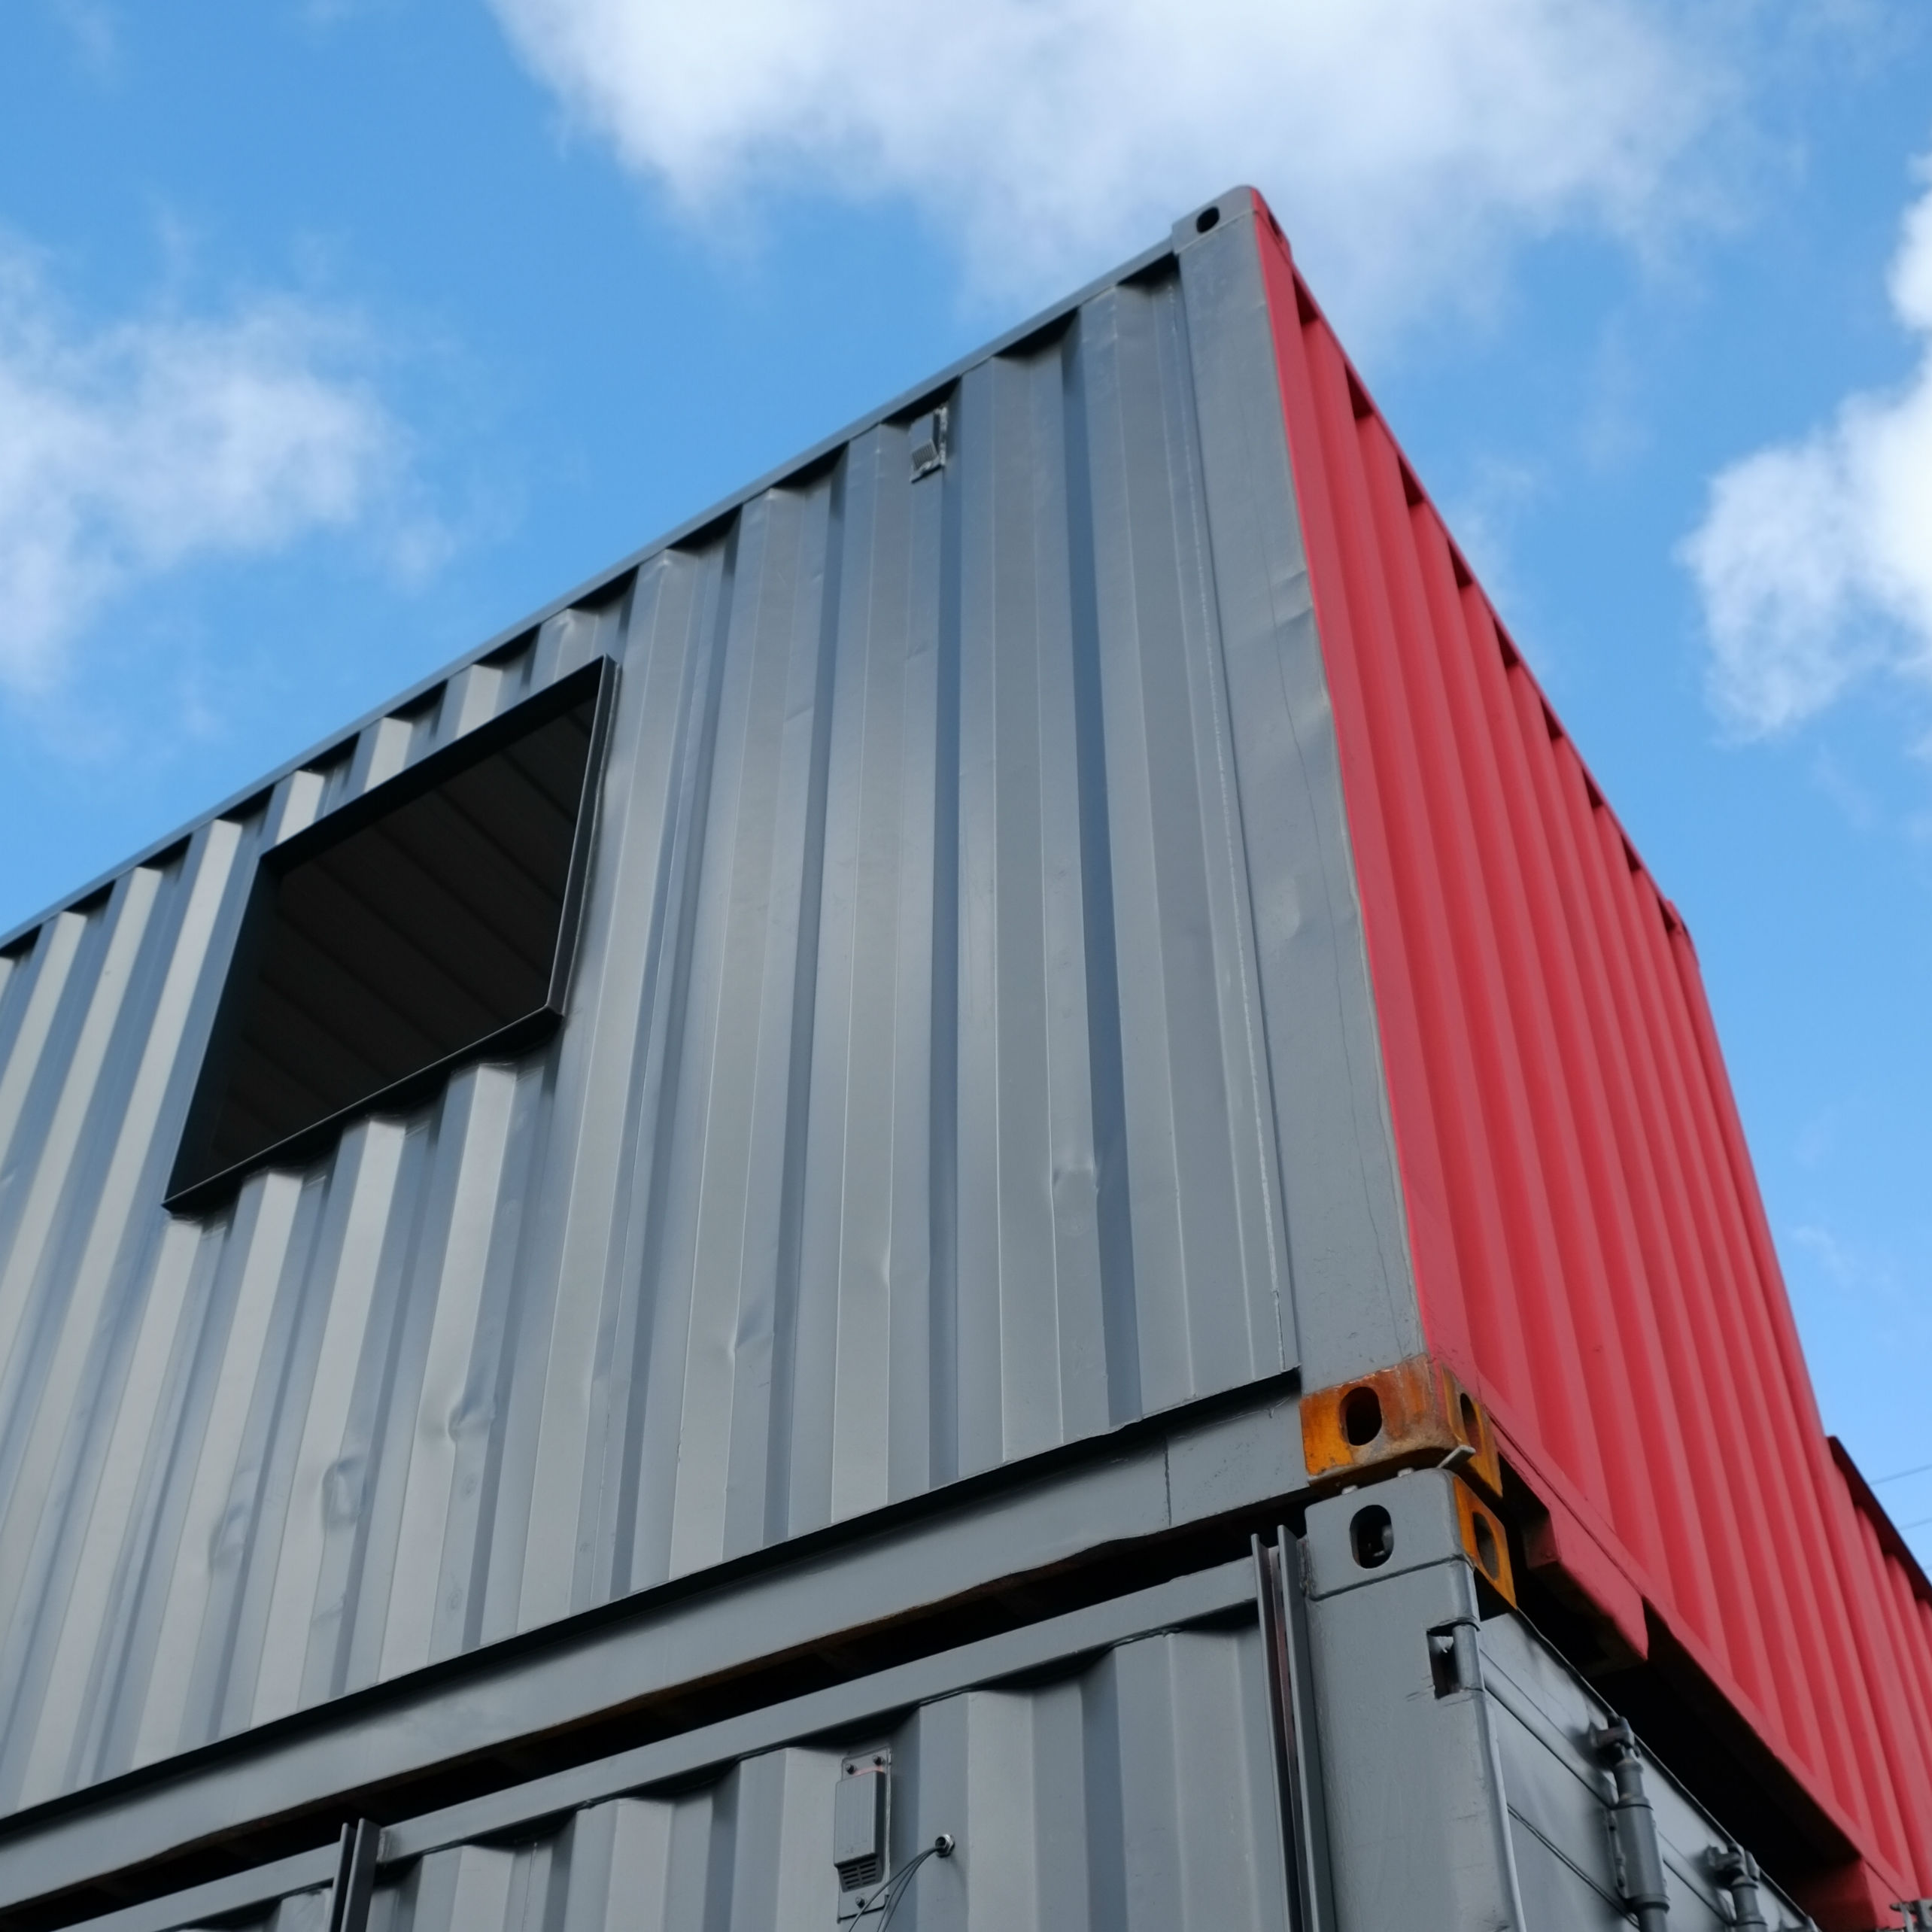 Container Delivery Day at The Yard